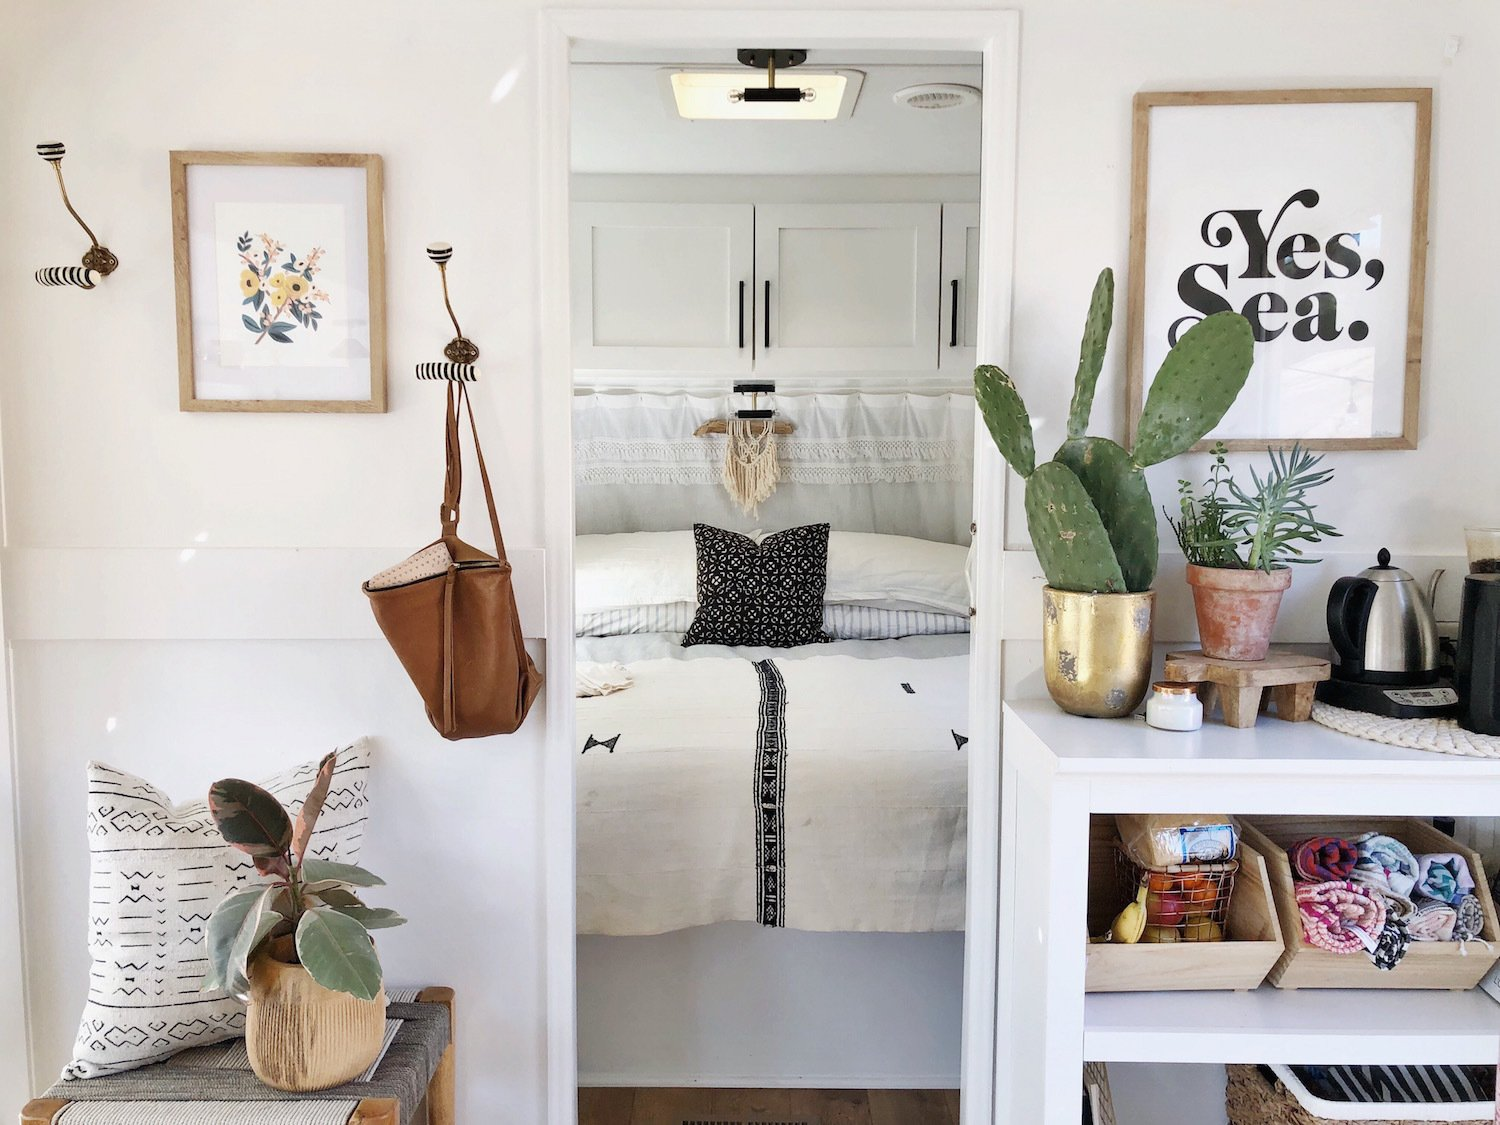 The couple kept costs low by sourcing art and furniture from garage sales, IKEA, Amazon, and Target. Tagged: Bedroom, Storage, Bed, Medium Hardwood Floor, and Ceiling Lighting.  Photo 4 of 11 in A Couple Spend $3K to Turn an Old RV Into a Cozy Home For Five